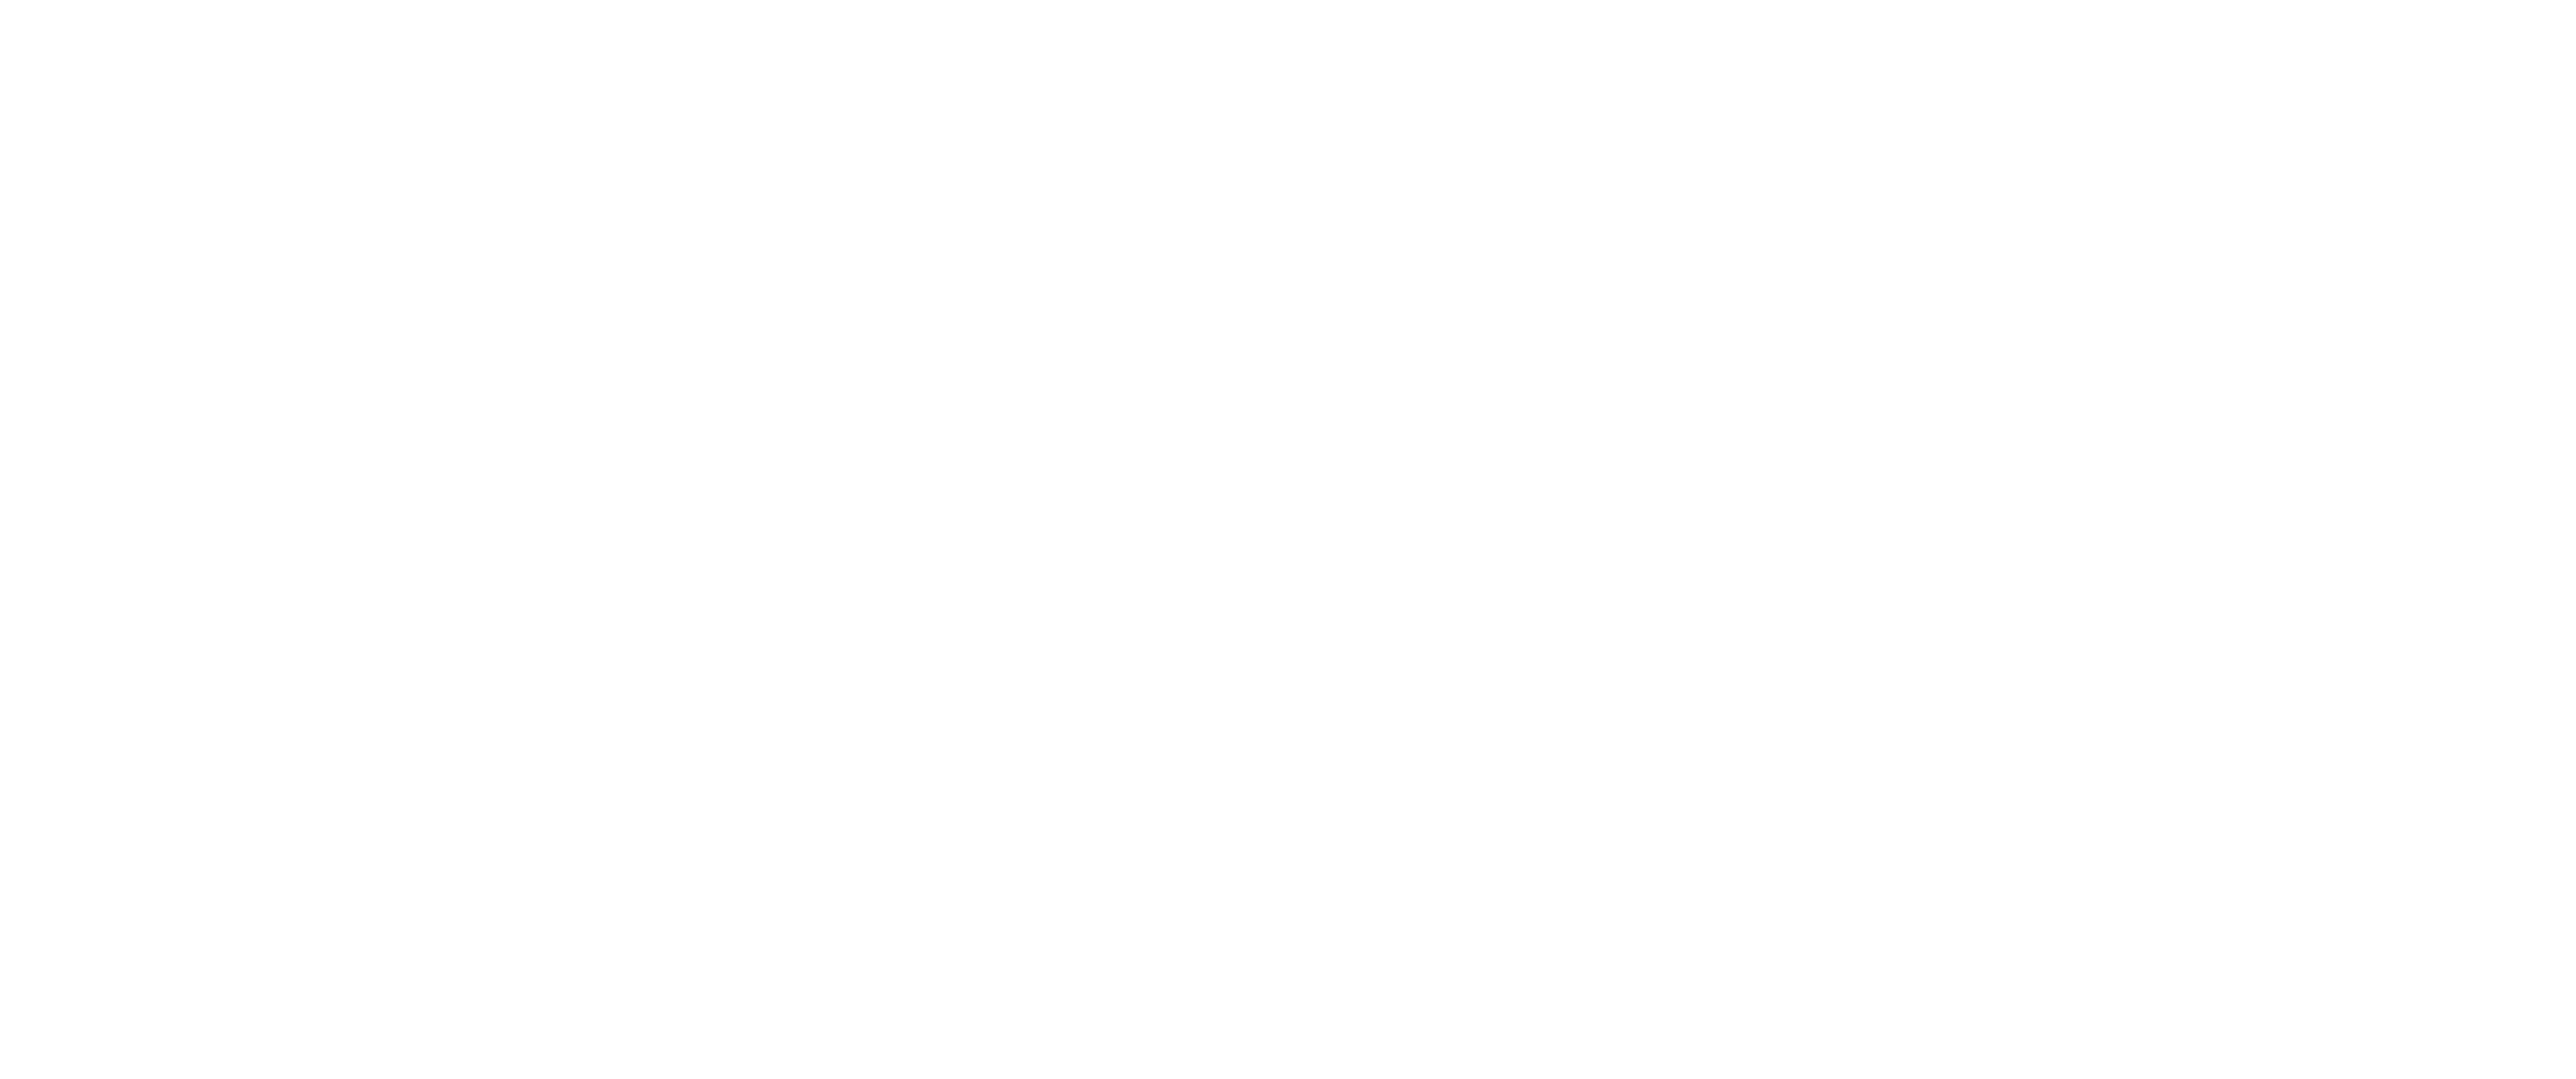 sports medicine experts white logo